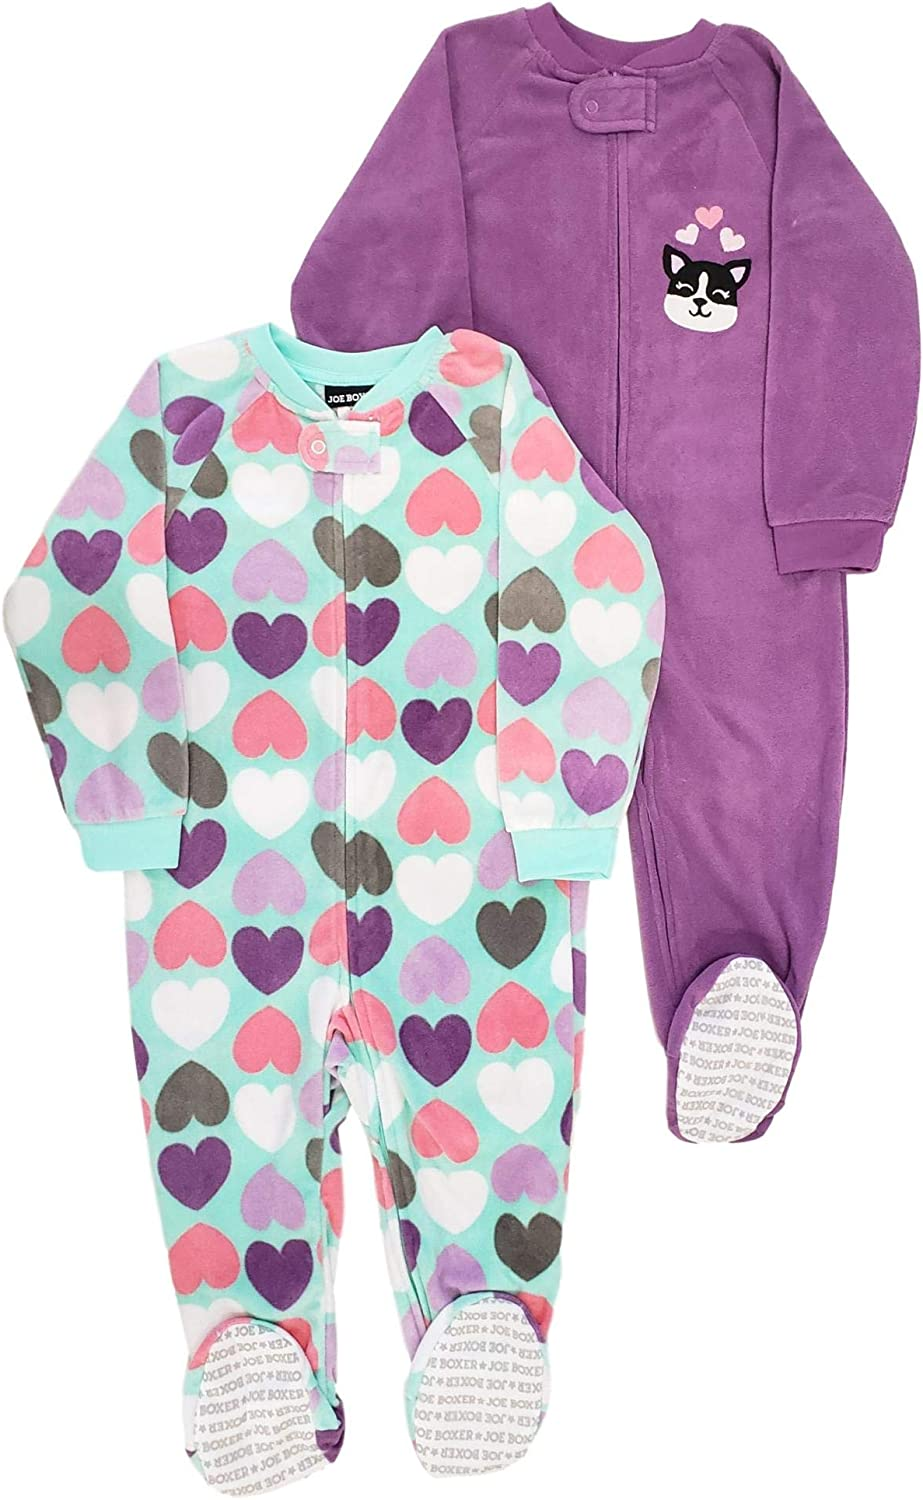 Joe Boxer Infant Toddler Girl Heart shipfree Footie Print Fleece Pa Complete Free Shipping 2Pack